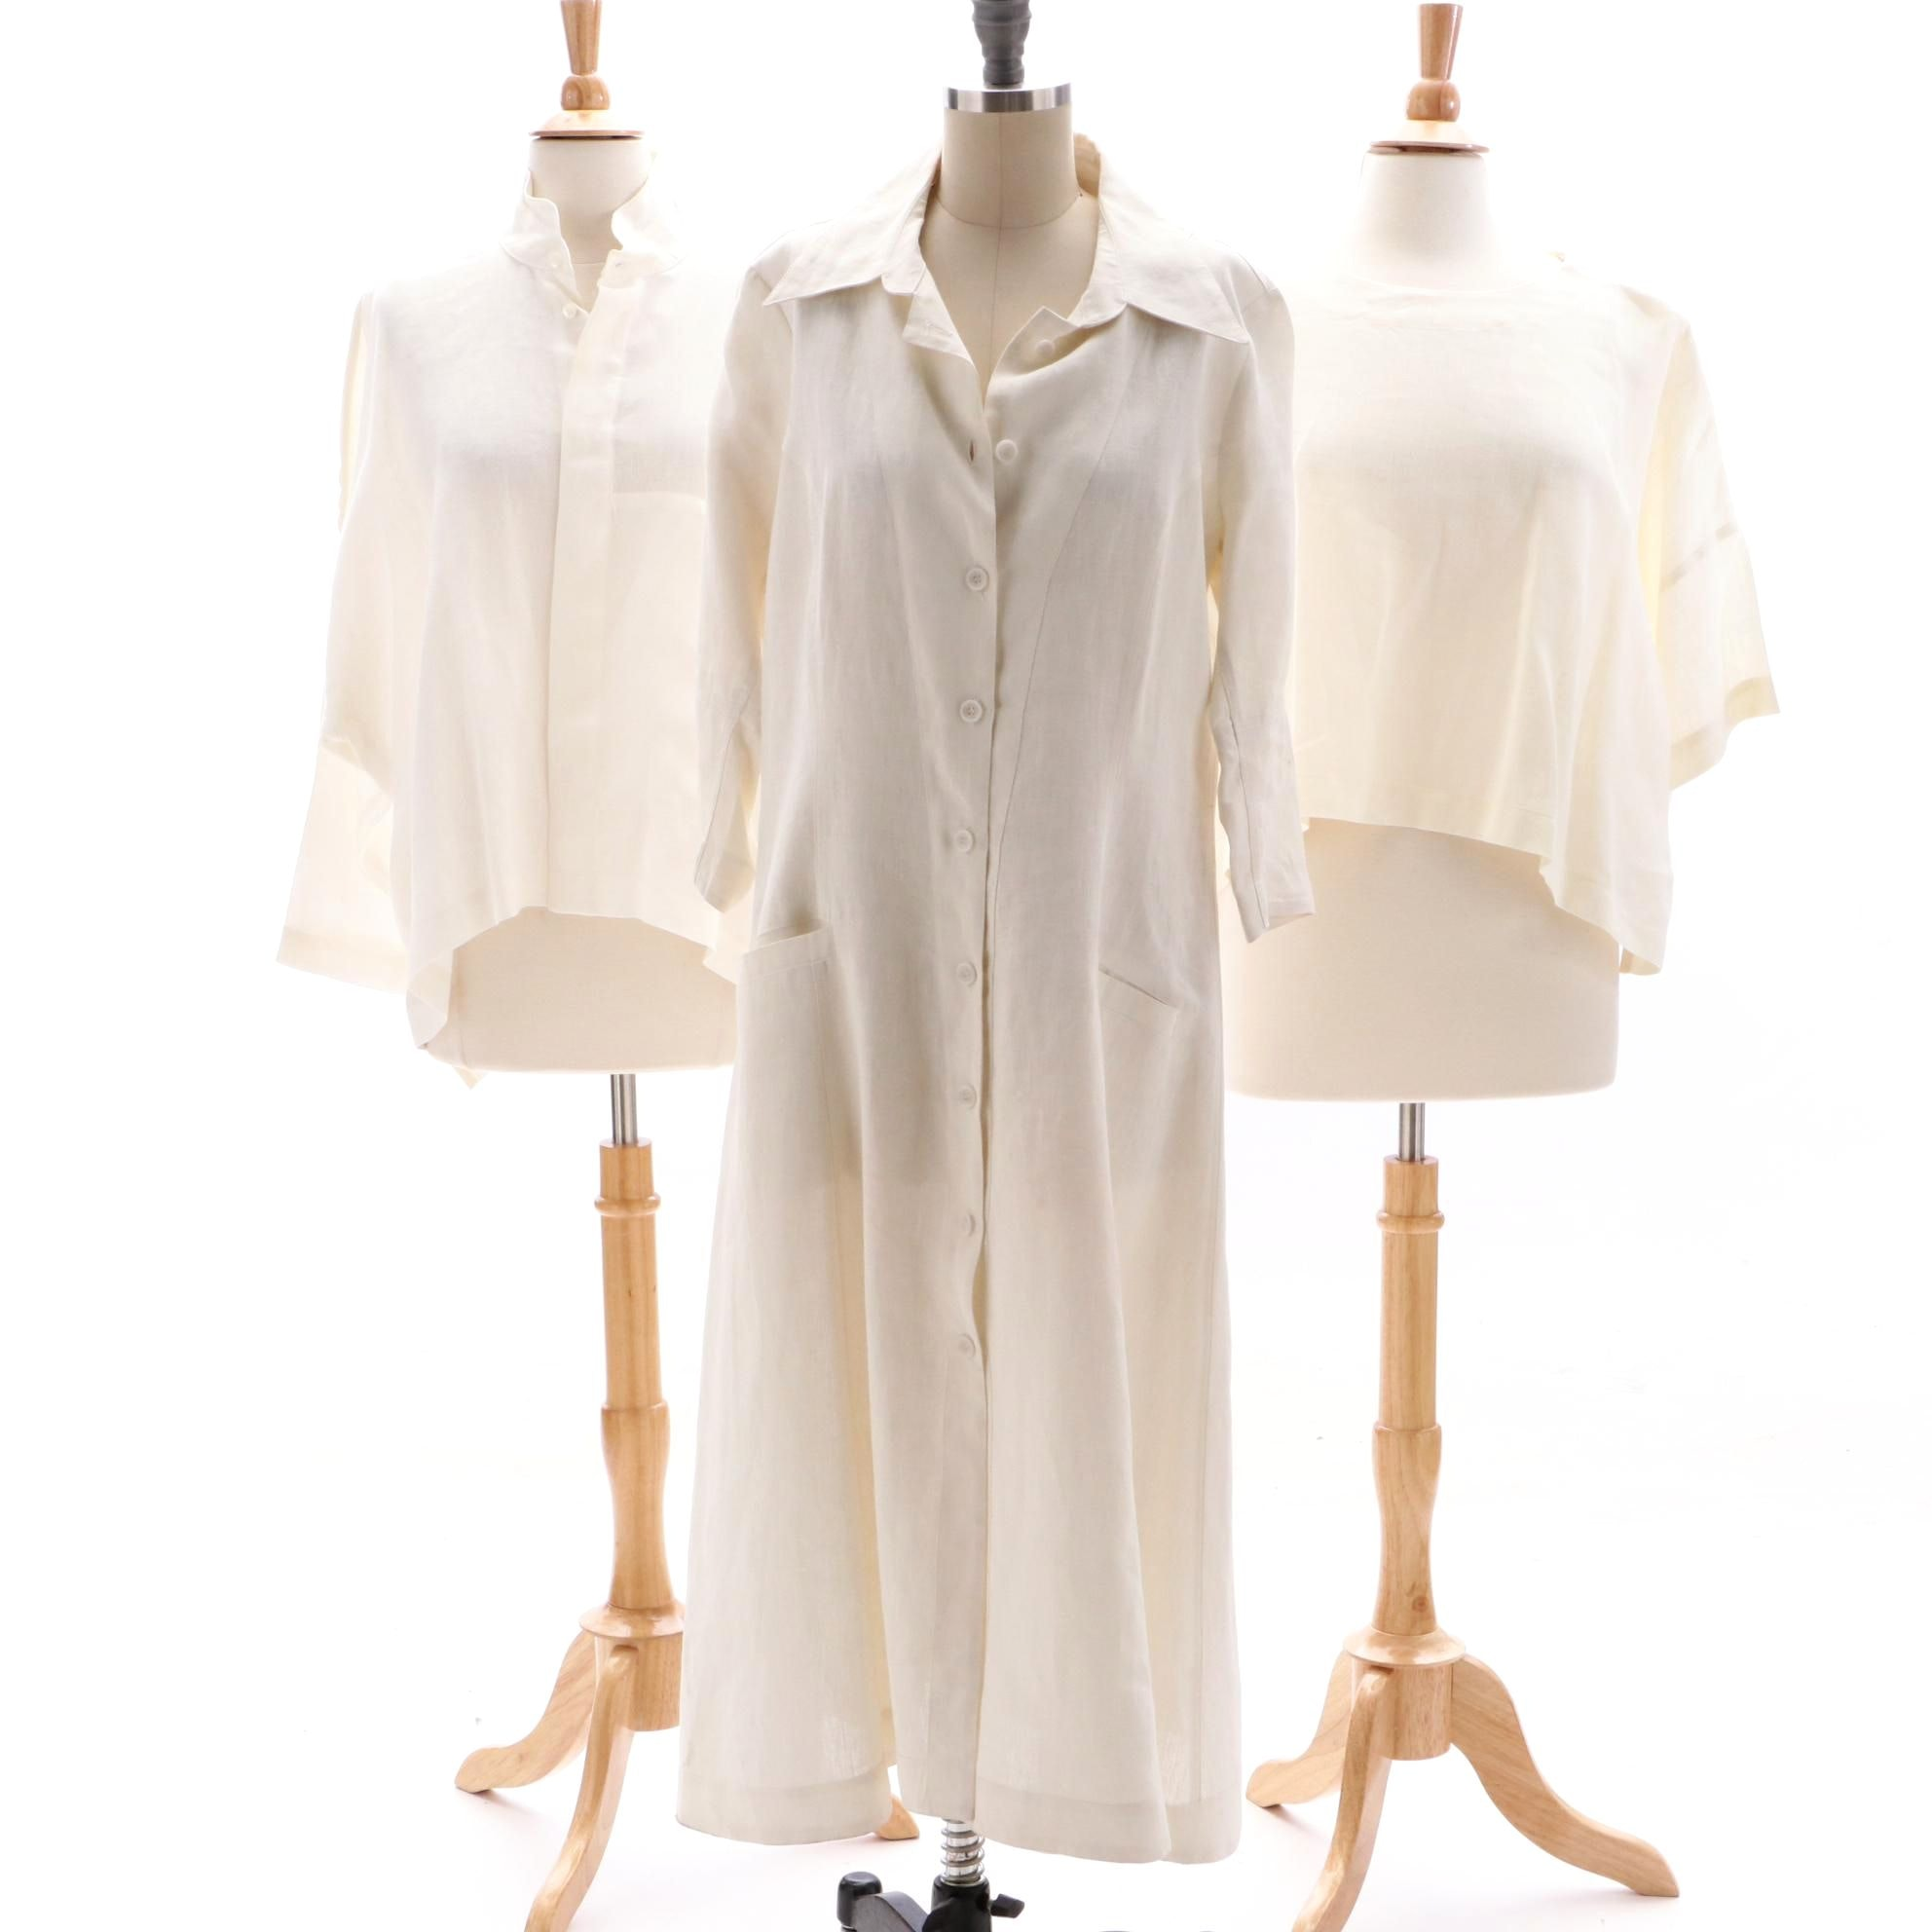 Elm Design Linen Dress and Eskandar Shirts